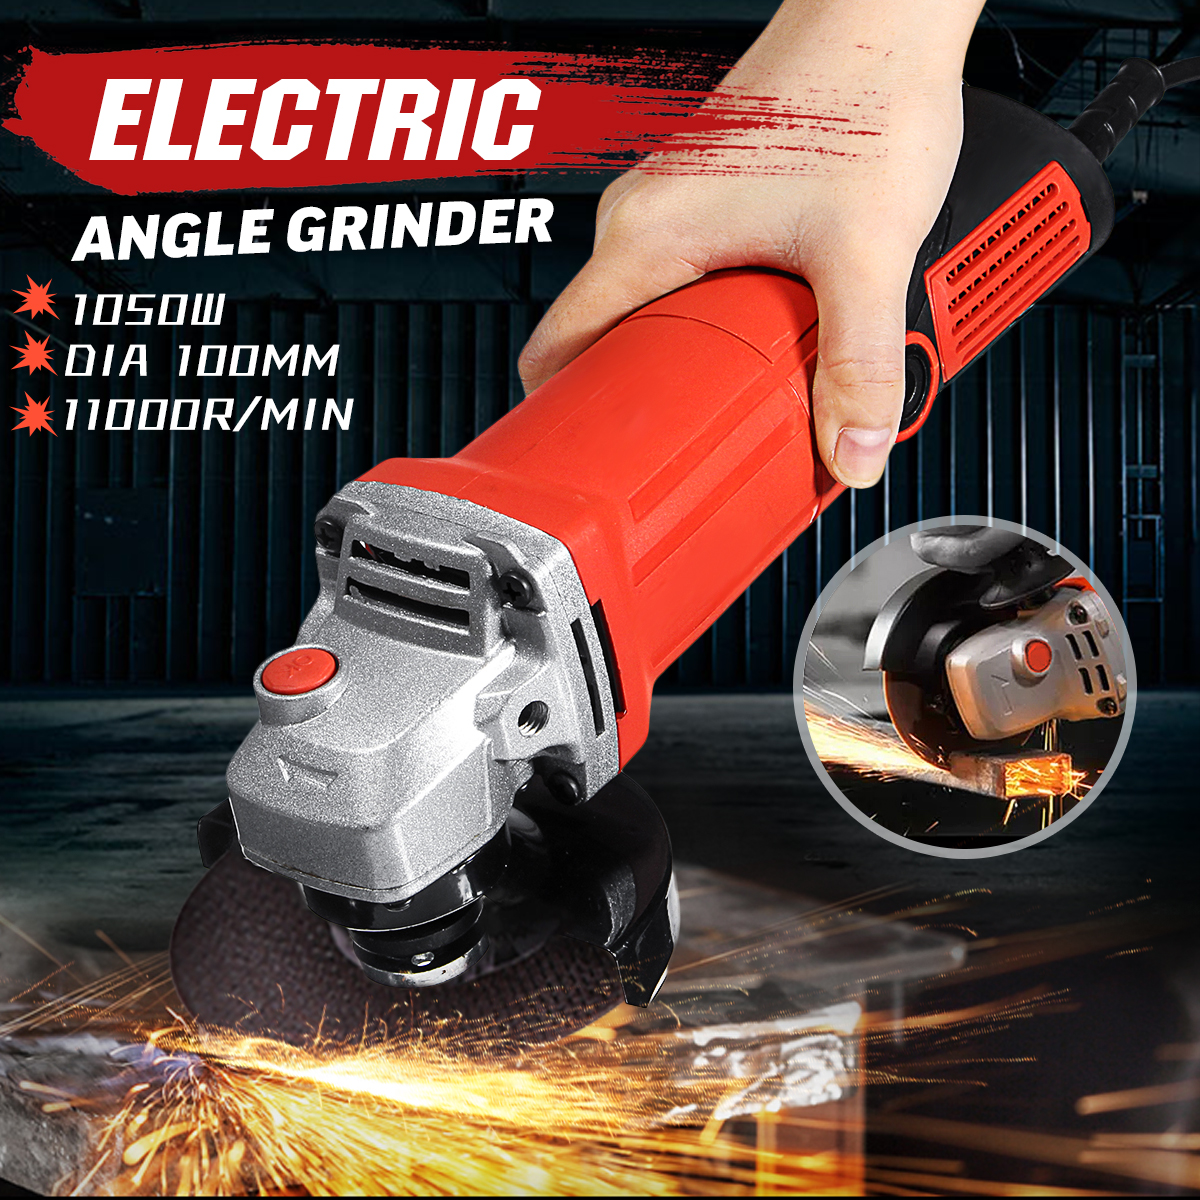 1600W Peaks 220-240V Angle Grinder 11000r/min Electric Grinder Polishing Polisher Grinding Machine Cutting Woodworking Tool